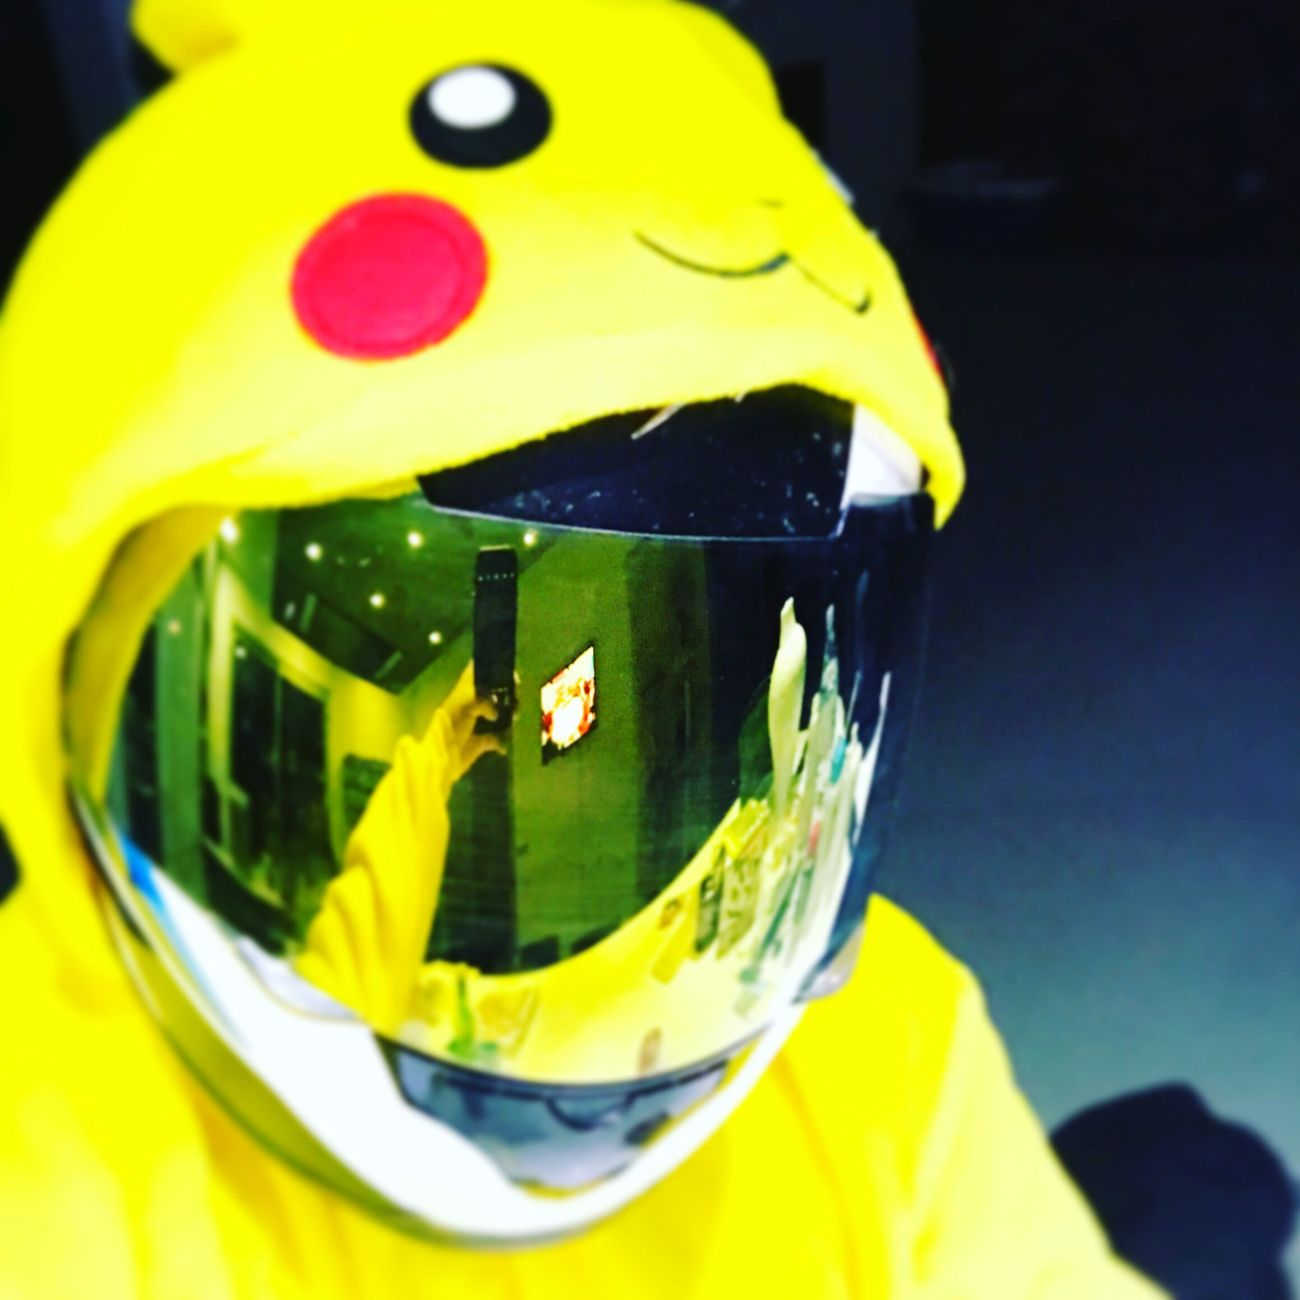 Ready for a ride Pikachu Moto